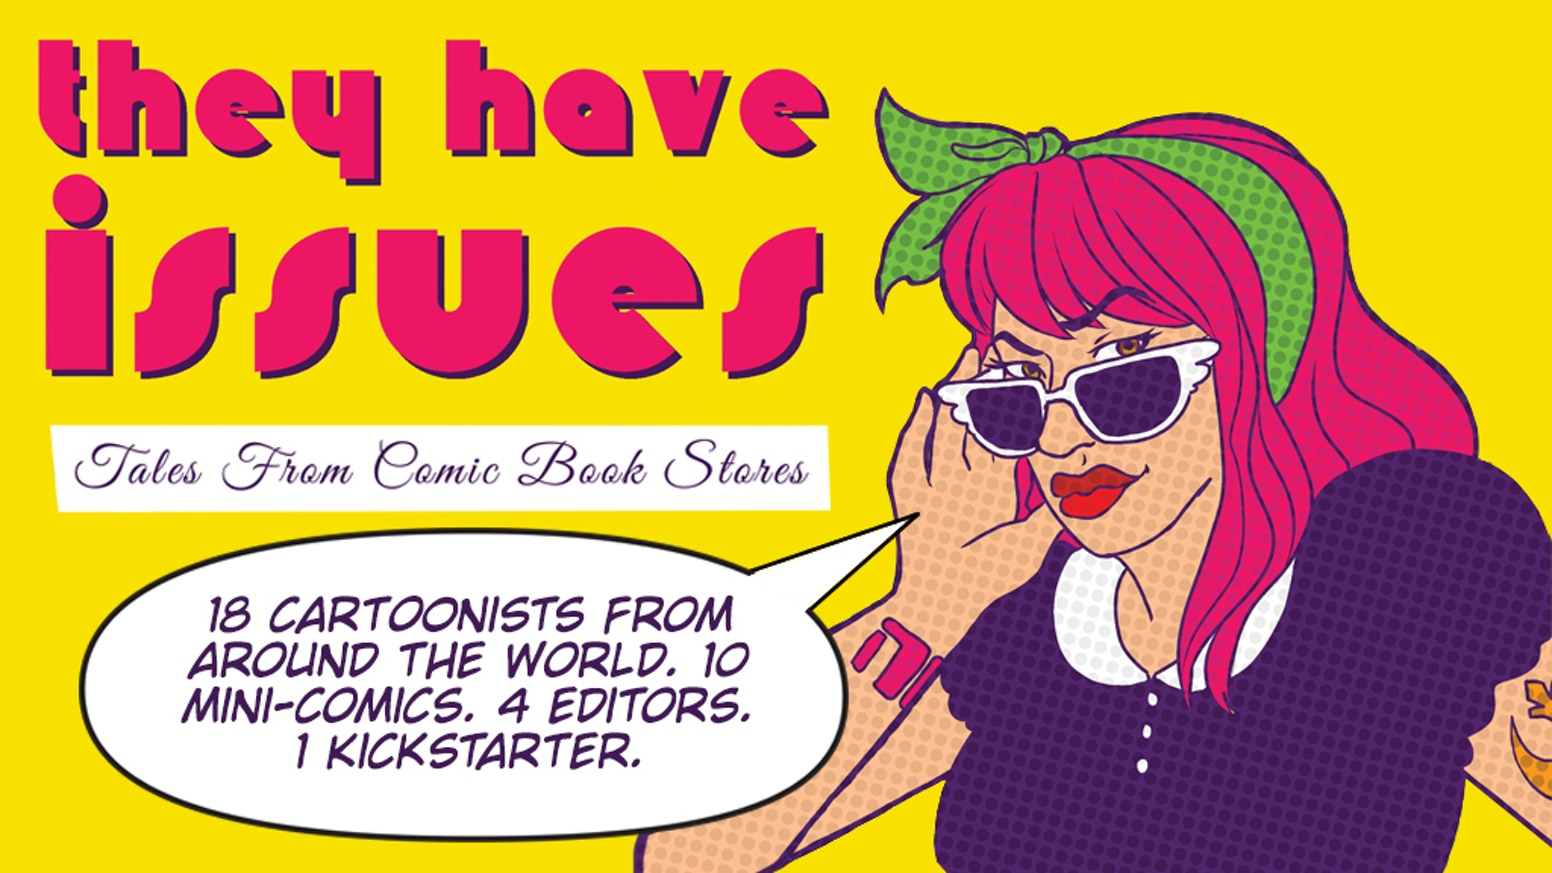 International comic anthology featuring 10 mini-comics about life behind the comic shop counter, from 18 female/non-binary creators!